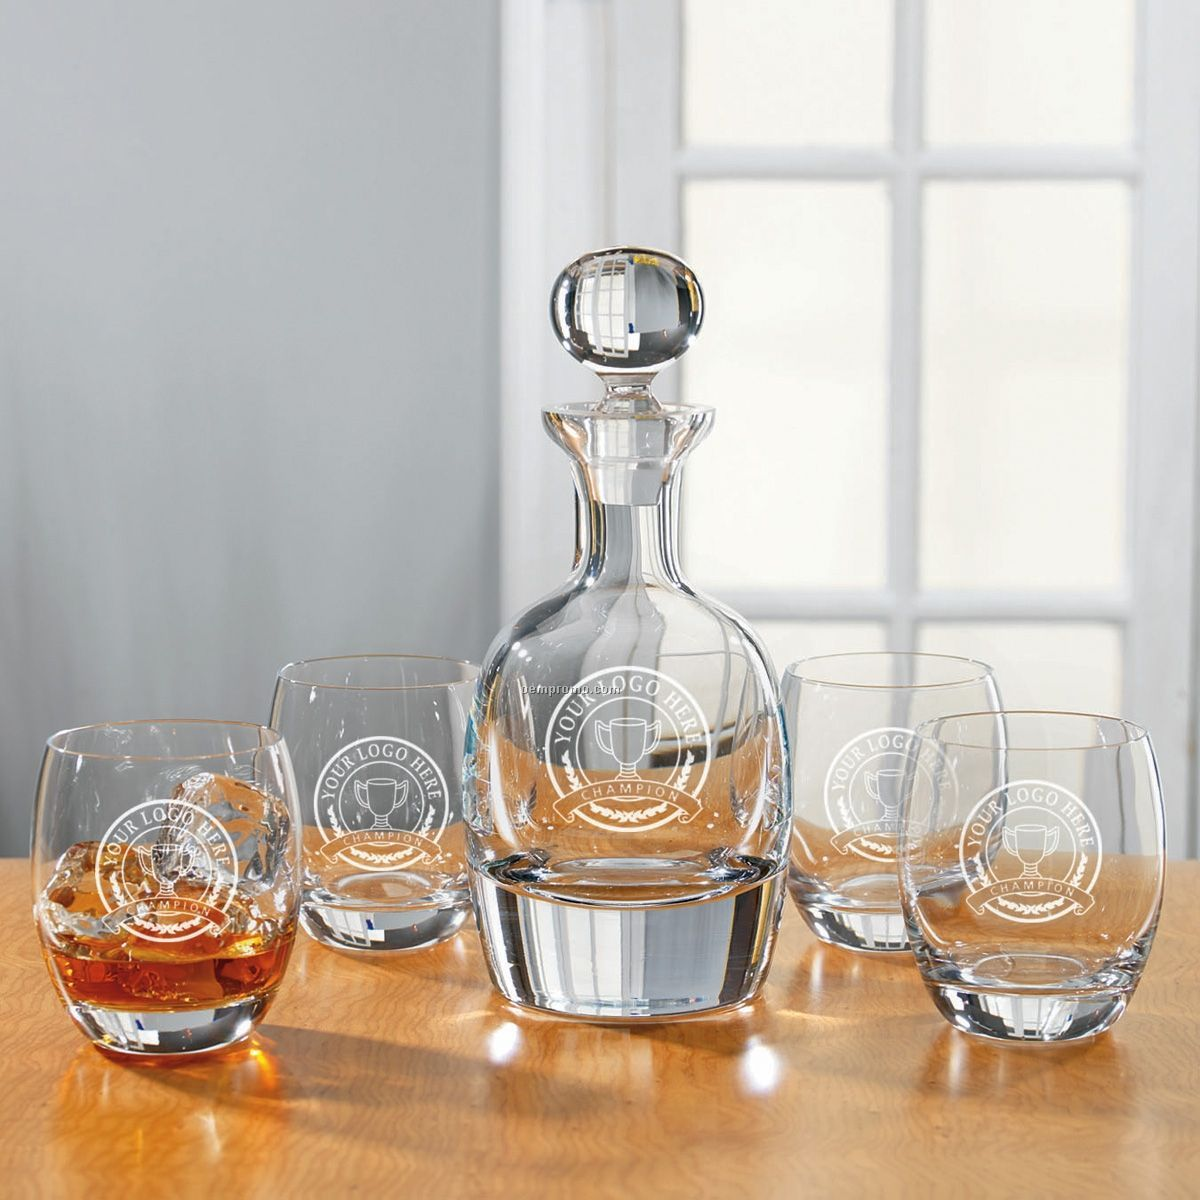 Set of 5 Bezrat Decanter and Glasses Whiskey Set-Bar Glassware Set Gifted Boxed Set Includes a Decanter with stopper and Crystal DOF Glasses FREE GIFT .